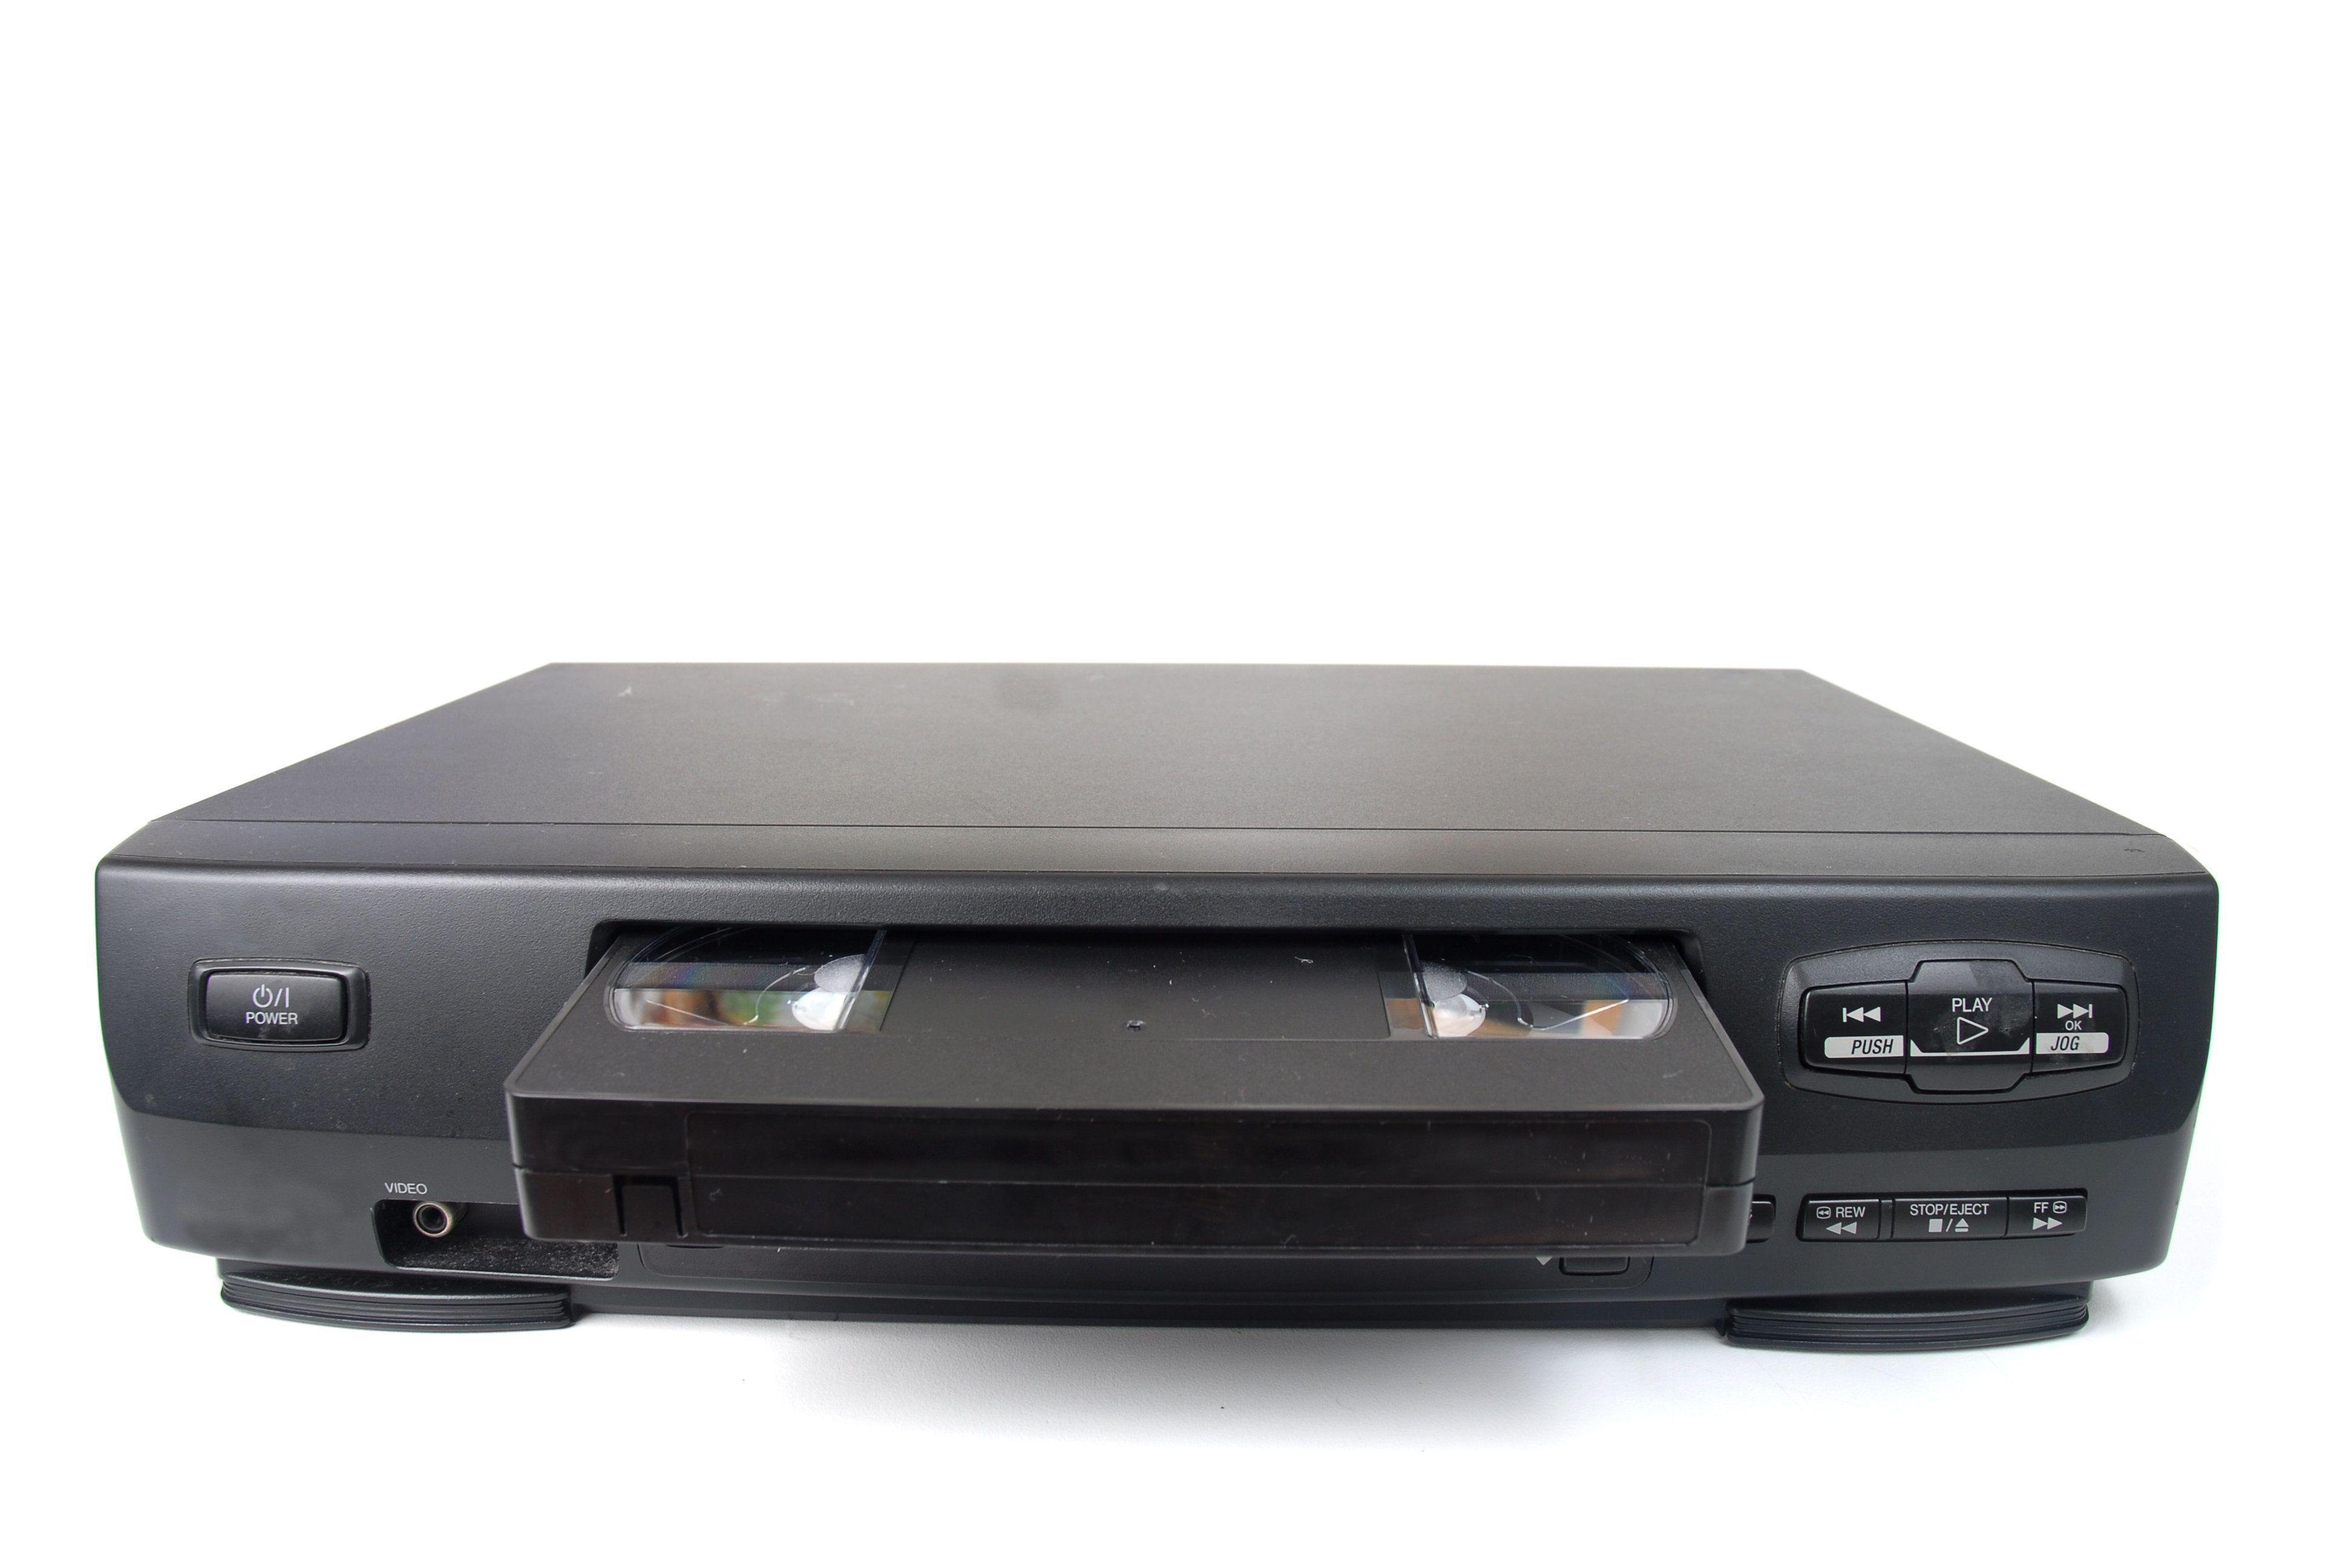 The world's last VCRs will be manufactured this month in Japan. In case you've forgotten what these things look like, here is